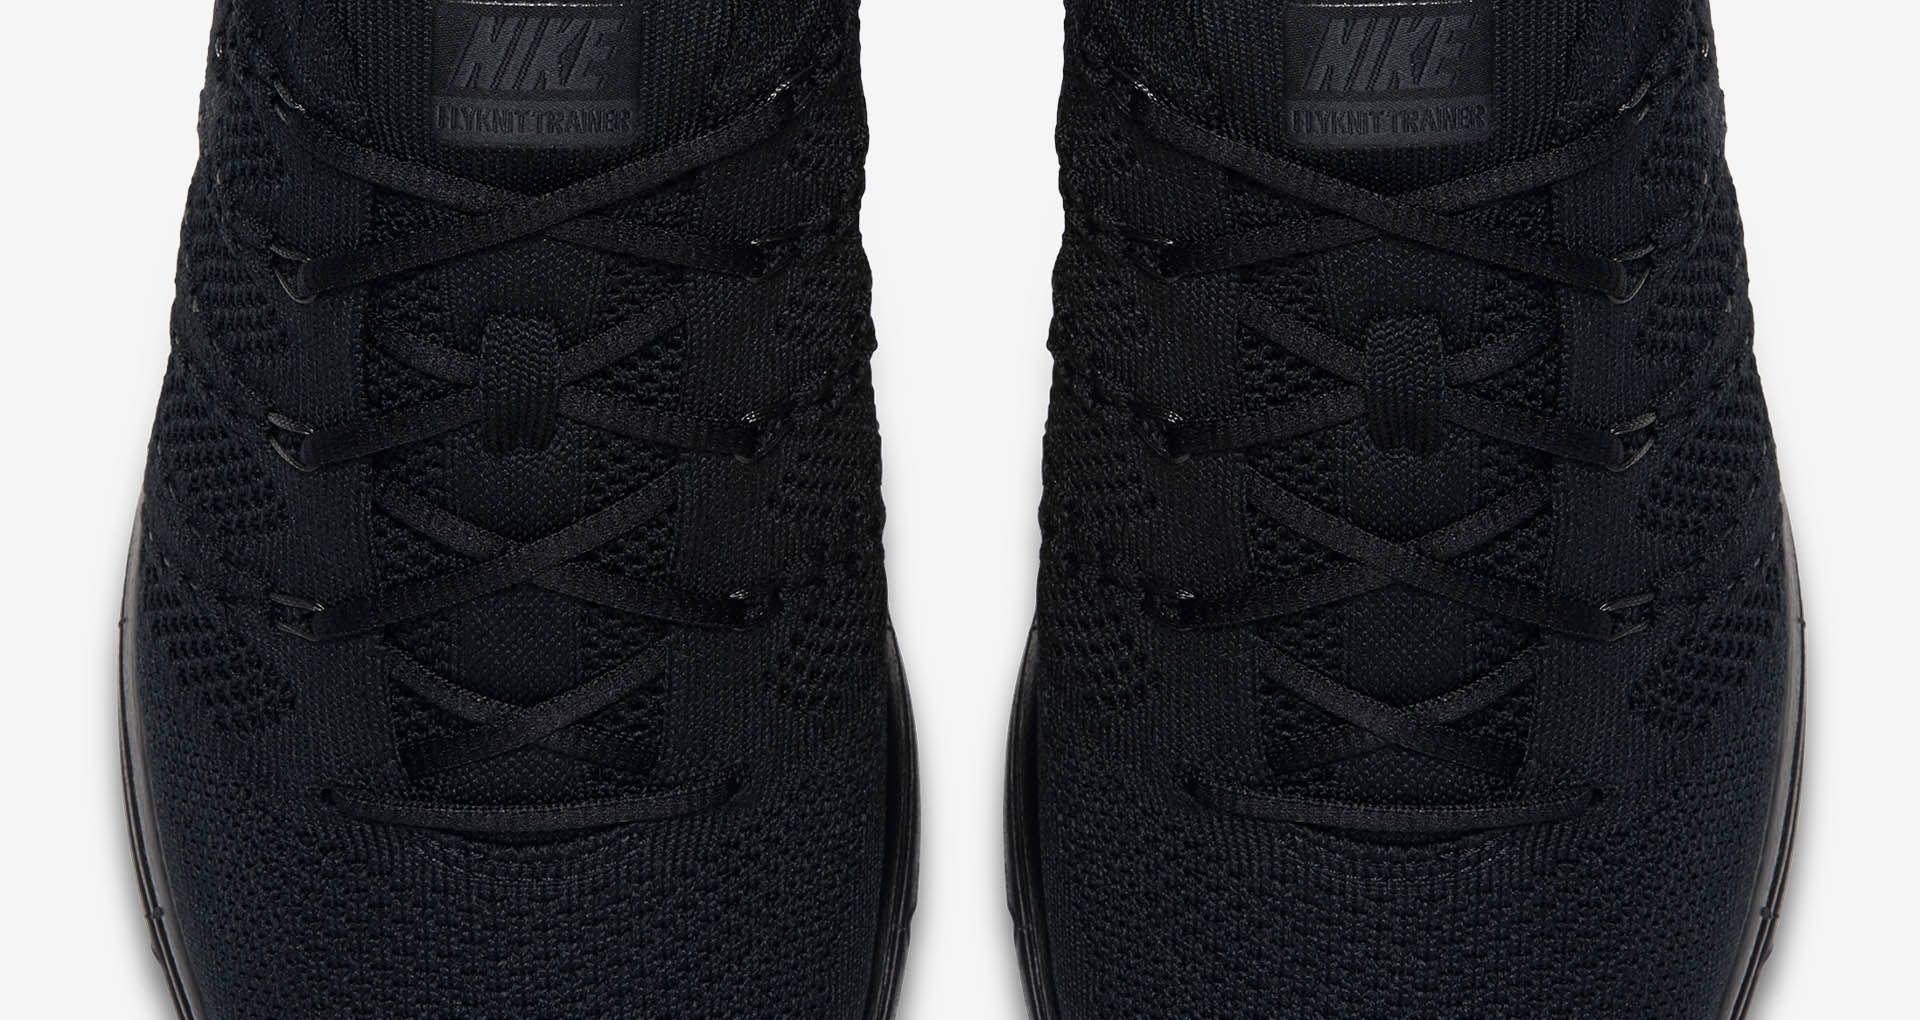 d79b48e827532 Nike Flyknit Trainer  Black   Anthracite  Release Date. Nike+ SNKRS